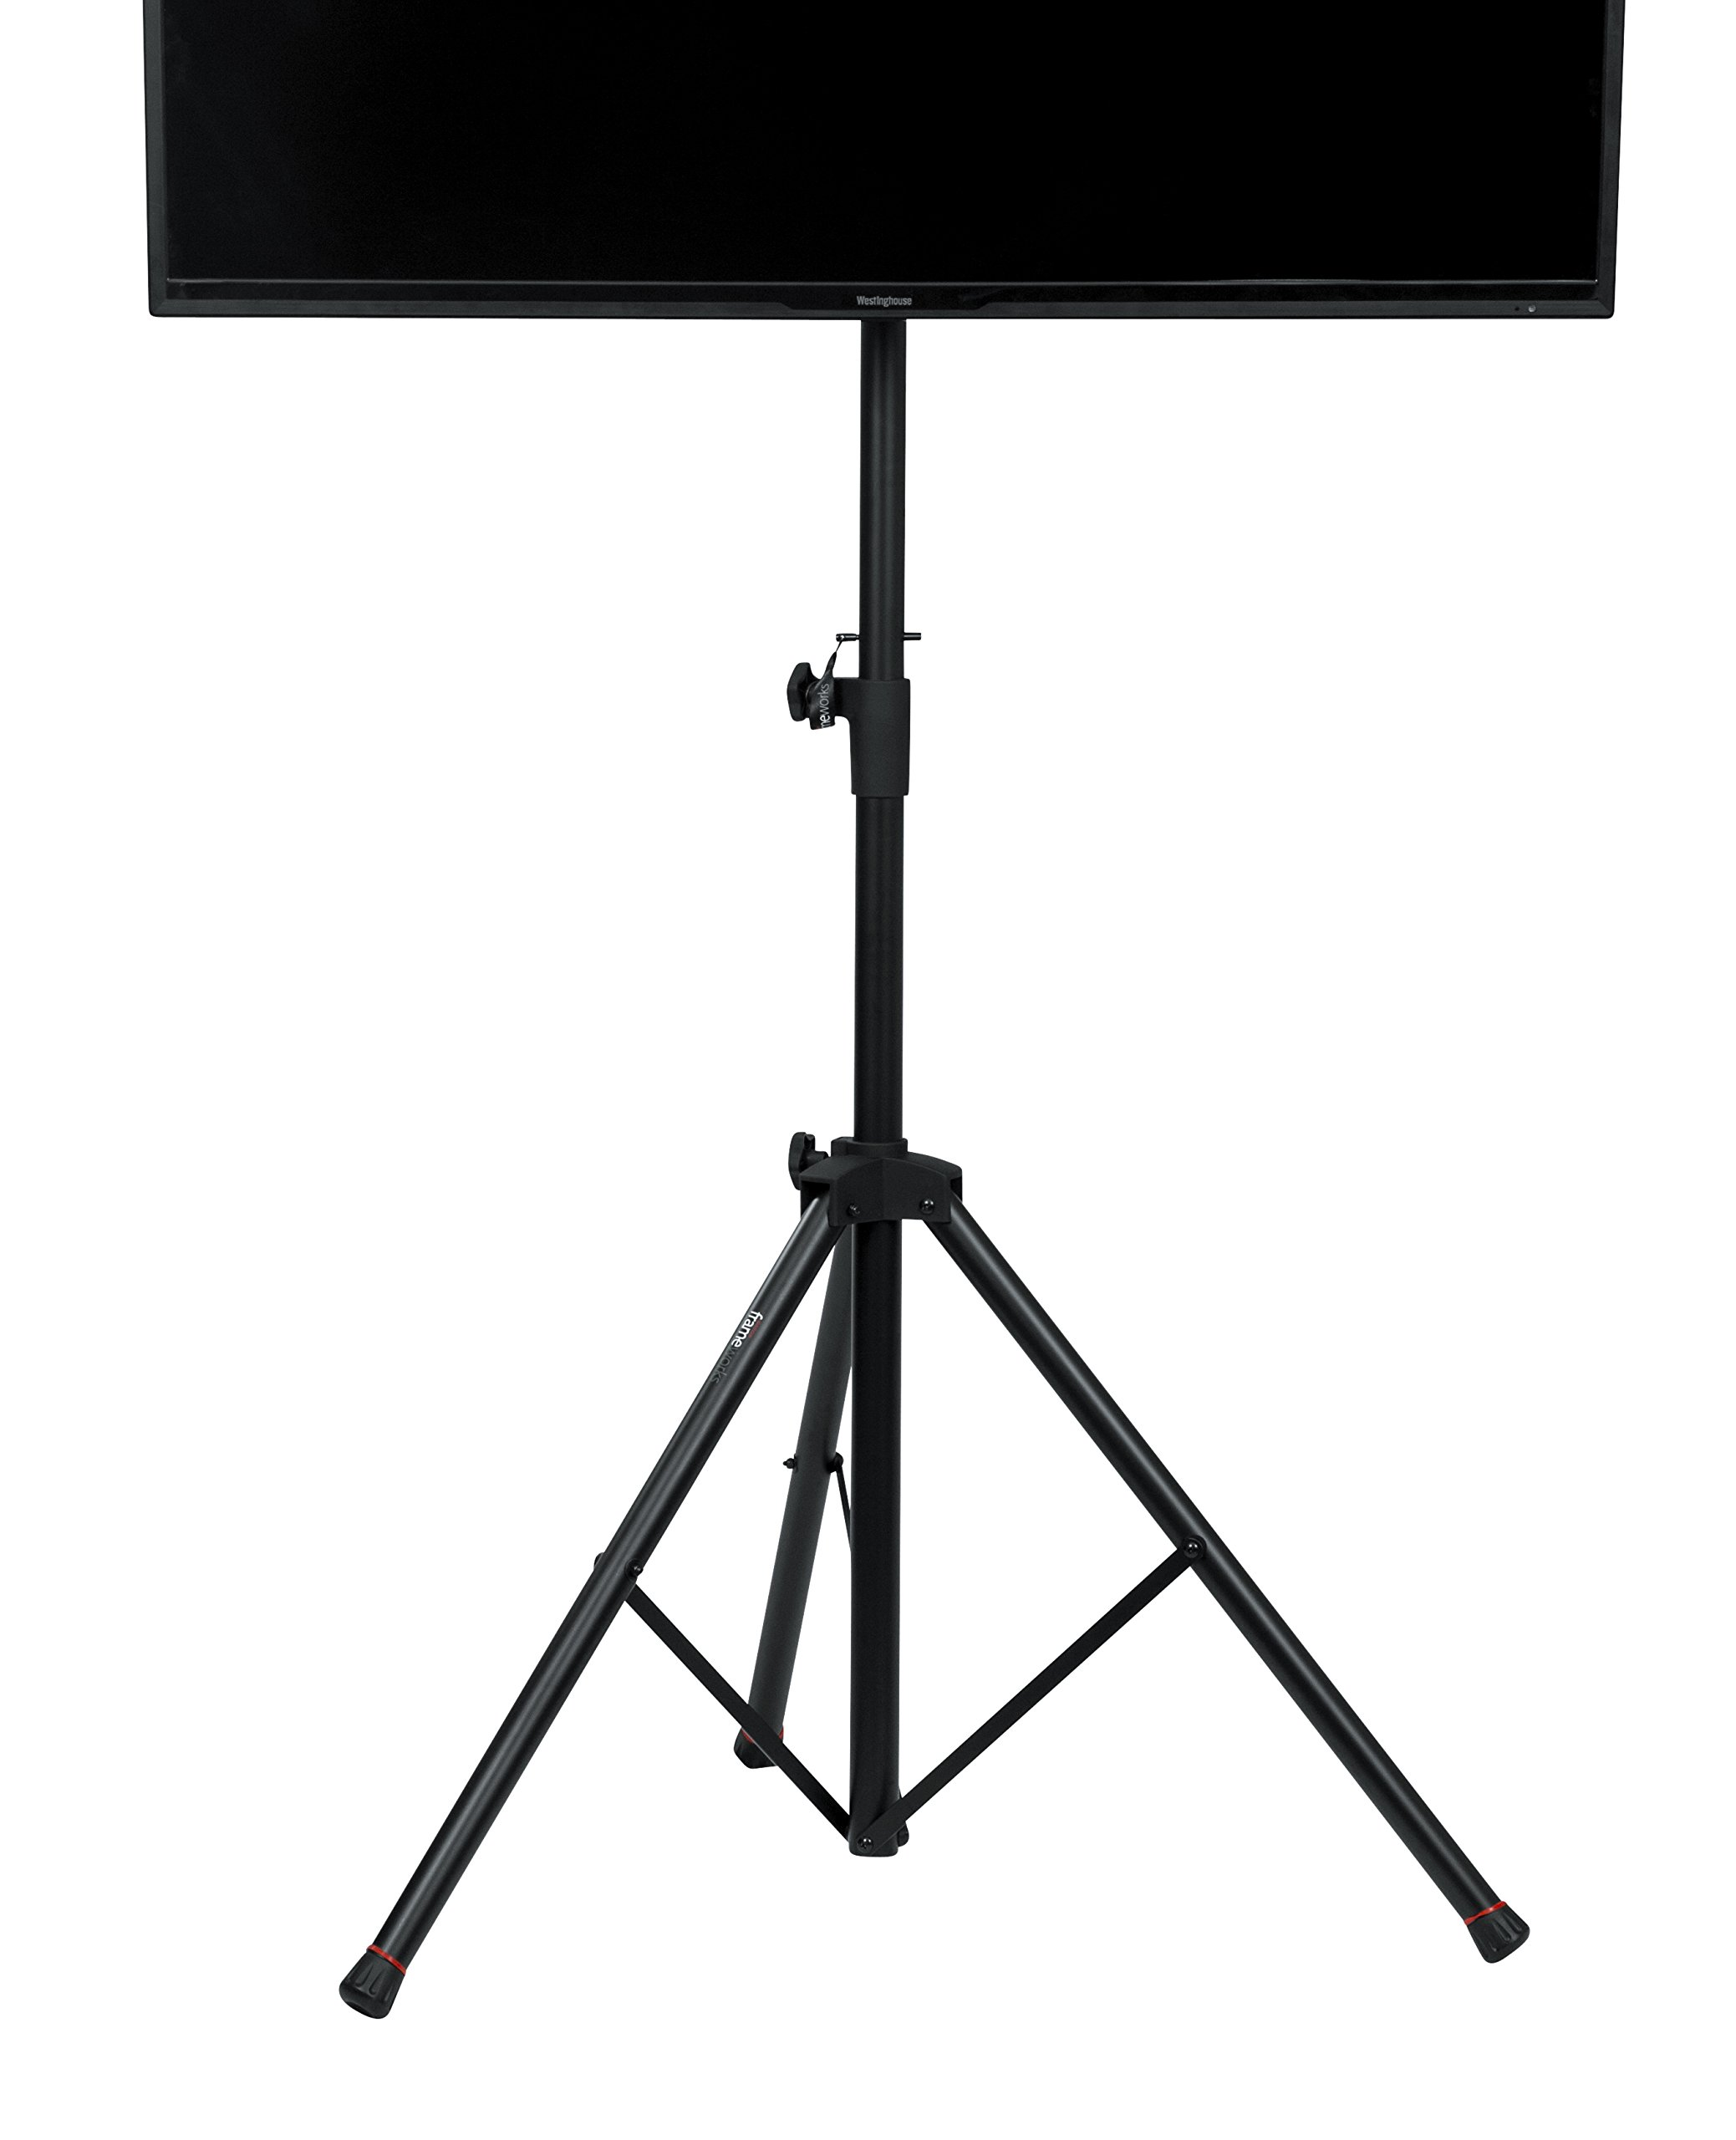 Gator Frameworks Standard Adjustable Tripod LCD/LED TV Monitor stand for Screens up to 48'' (GFW-AV-LCD-1) by Gator